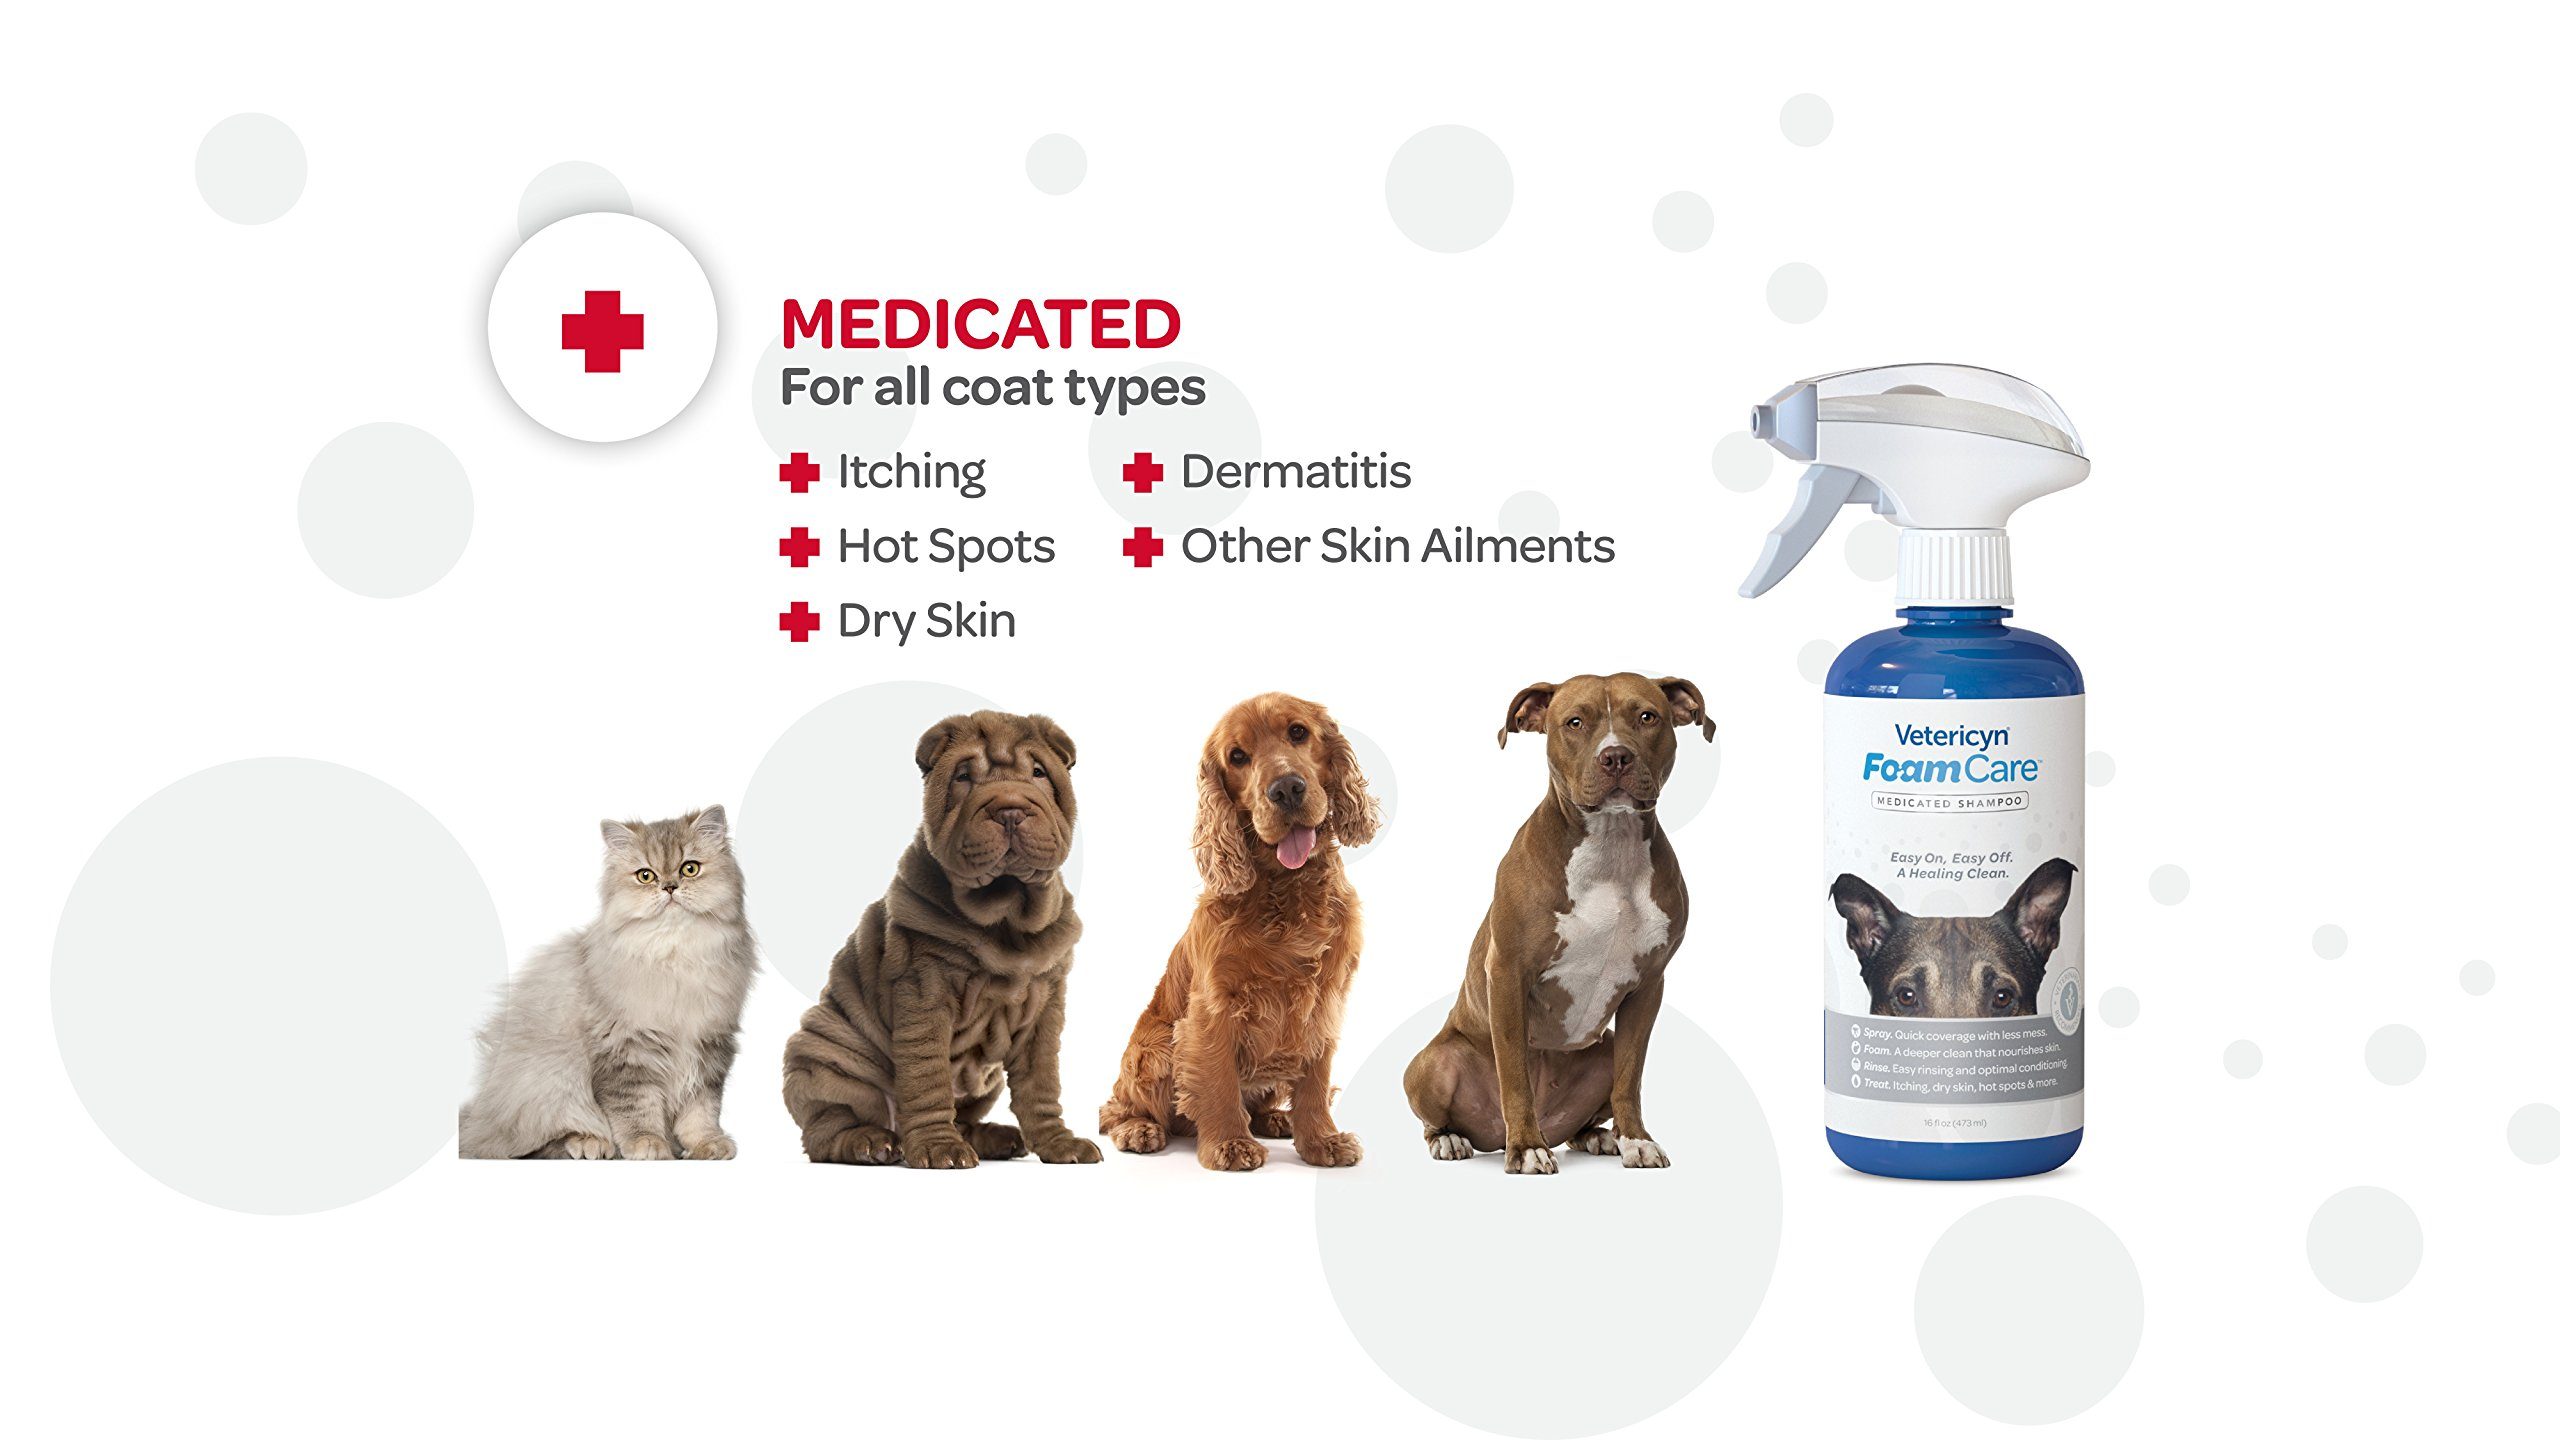 Vetericyn FoamCare Medicated Pet Shampoo Sensitive Skin Shampoo for Dogs, Cats, and All Animals - Anti-Itch, Promotes Healthy Skin and Coat - Hypoallergenic - Instant Foam Shampoo - 16-Ounce